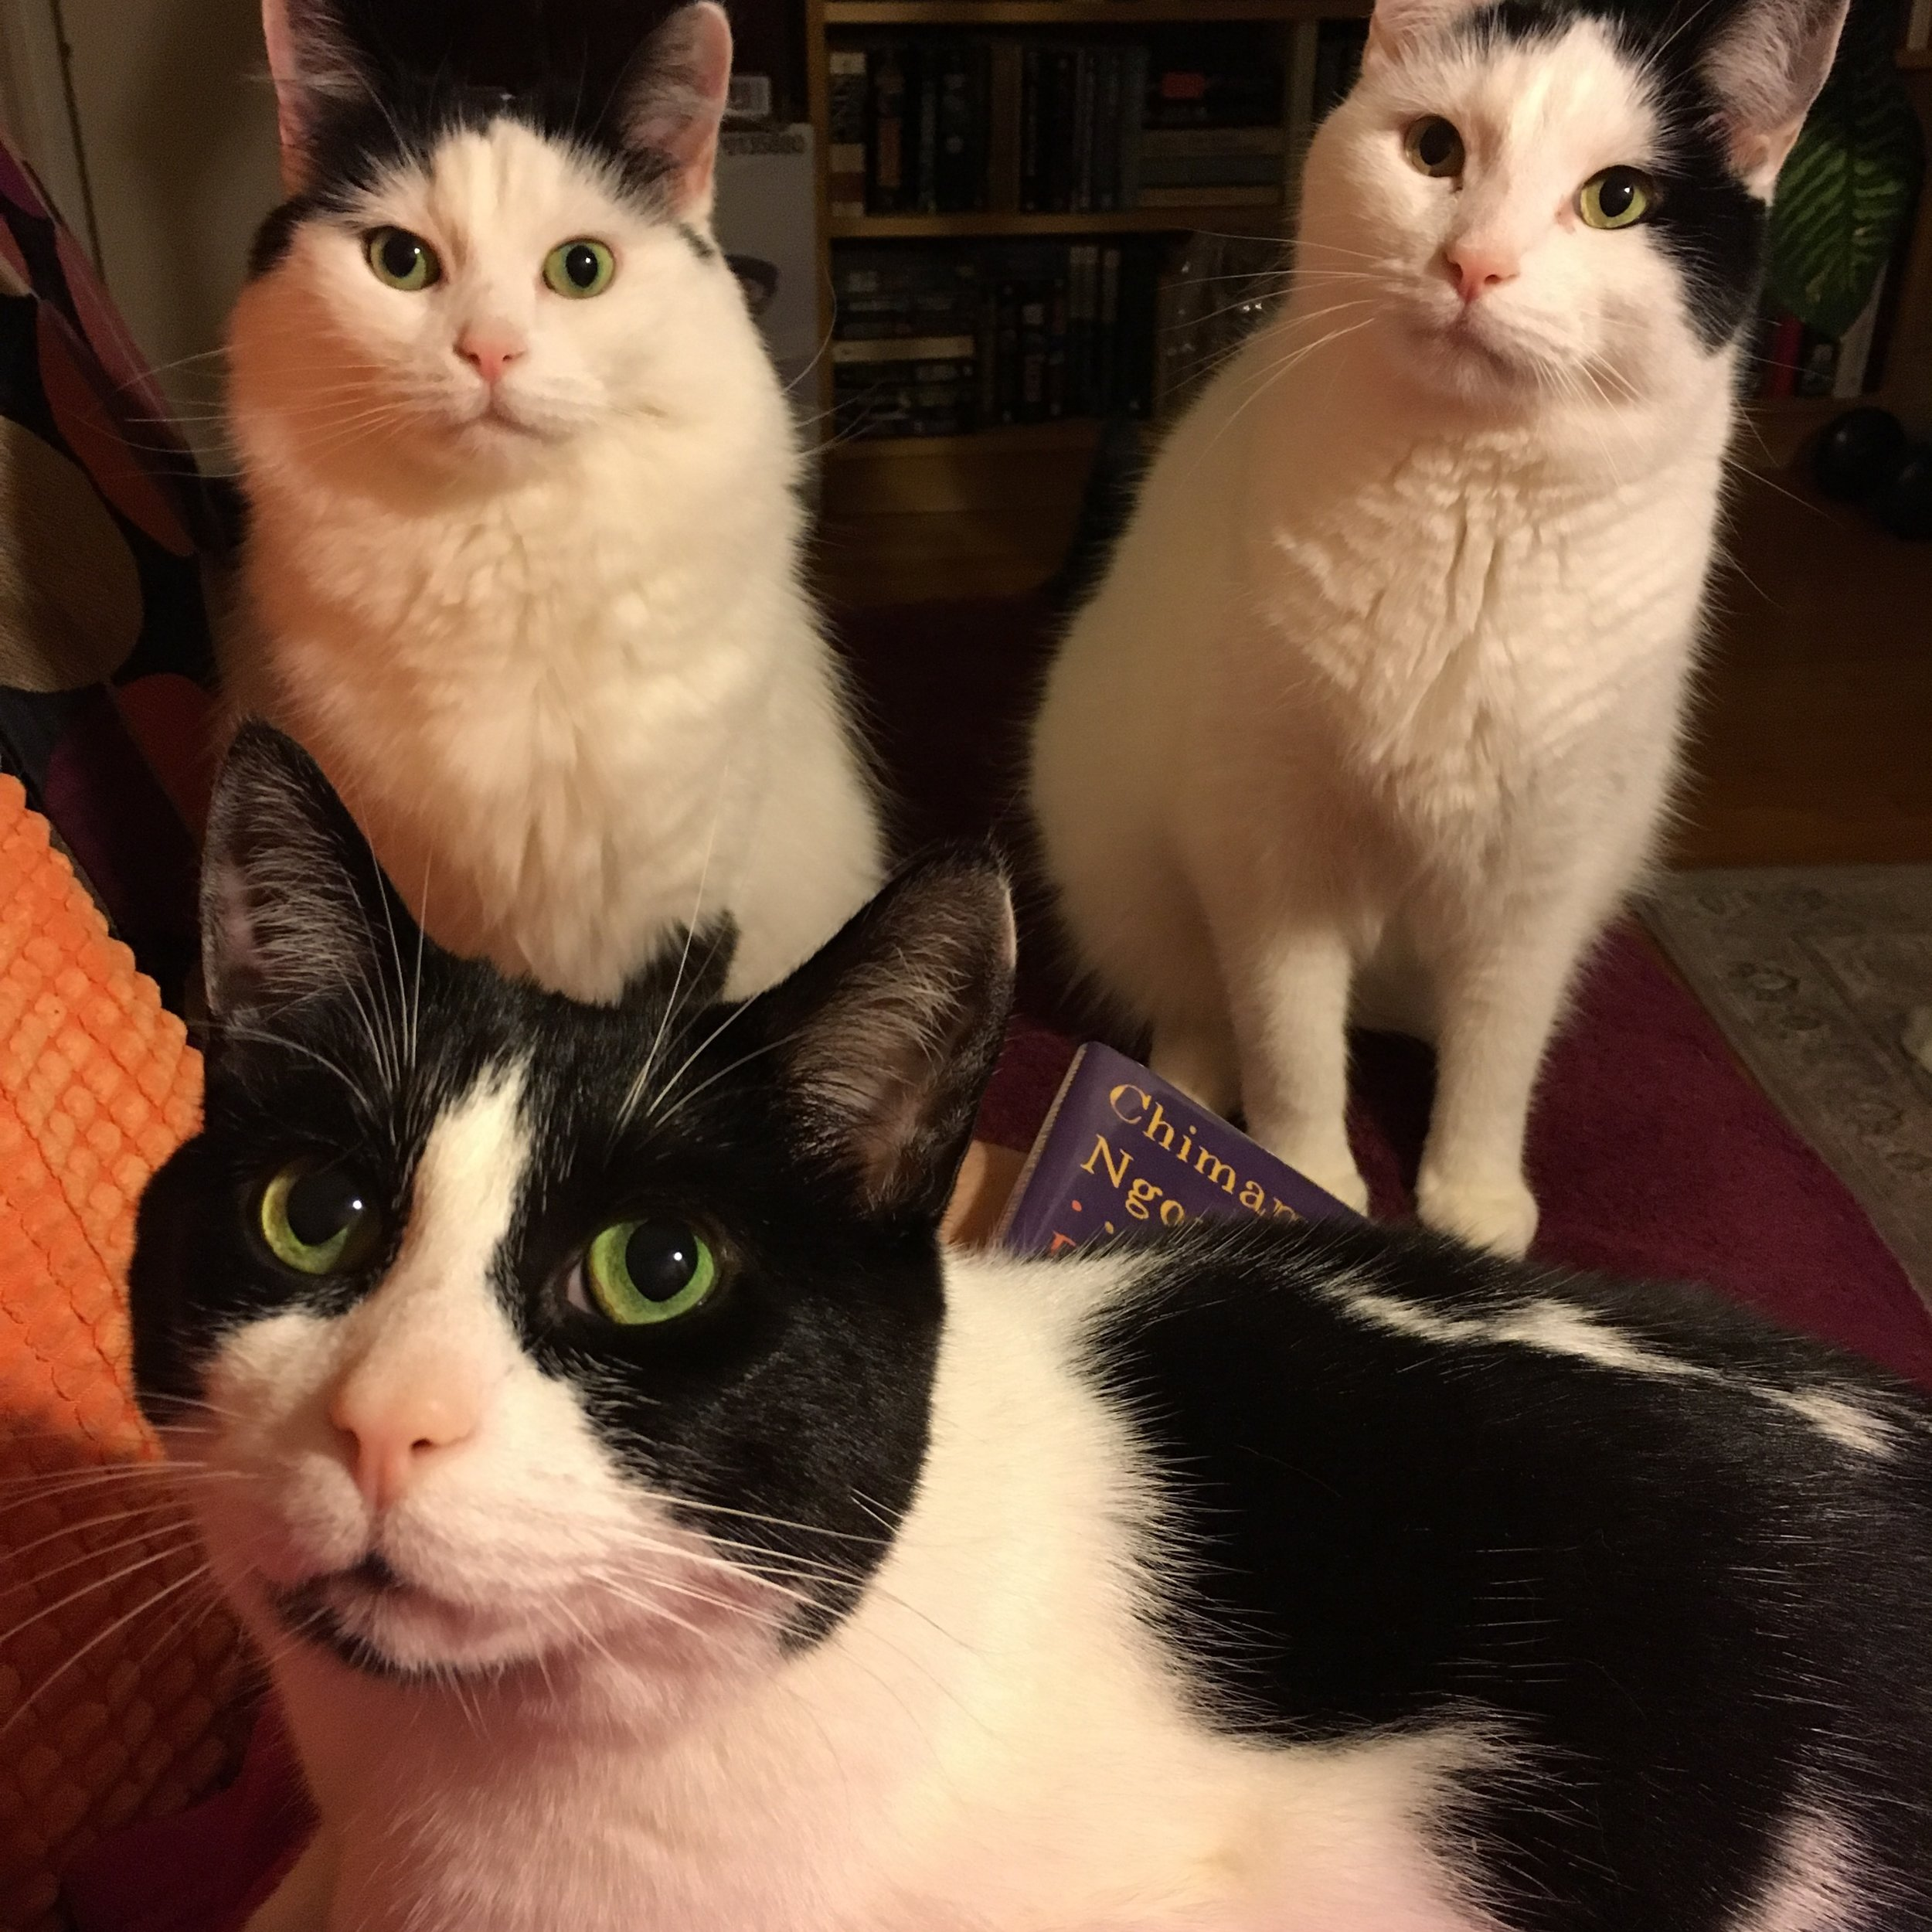 Happy New Year! - From all of us here - Ella, Gary & Hissy, (Frankie was hiding).